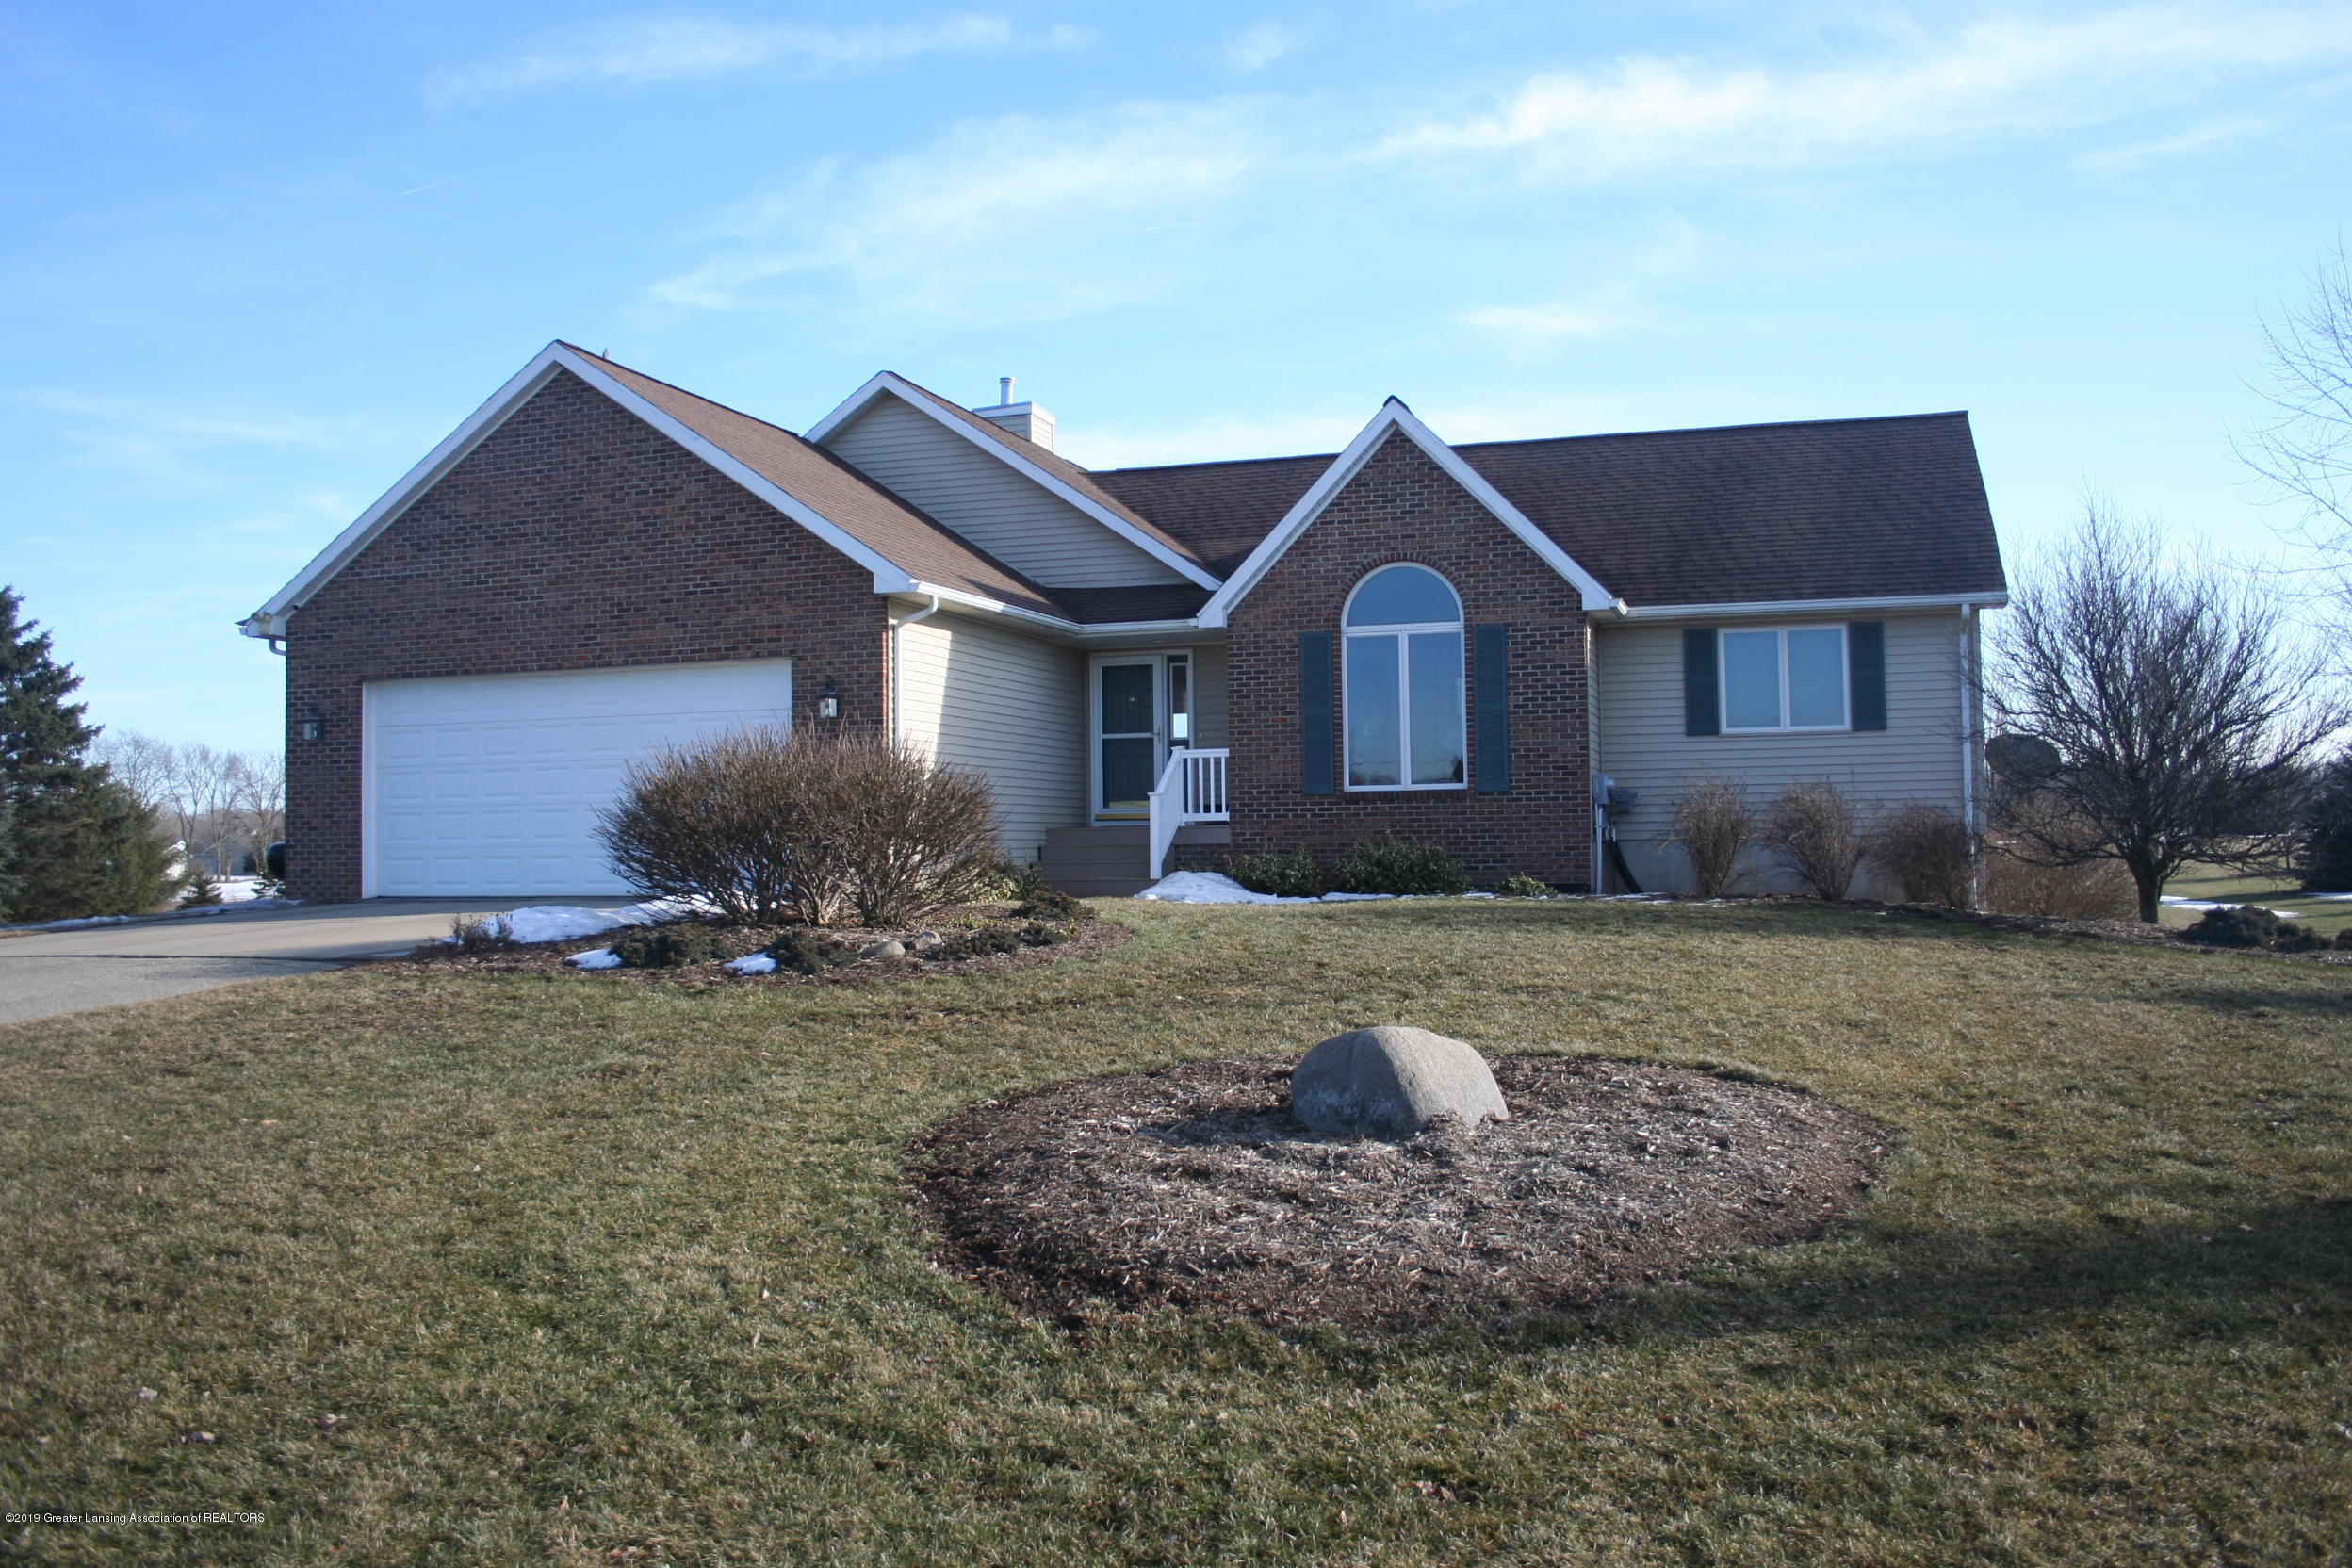 3896 E Saginaw Hwy - FRONT OF HOME - 1